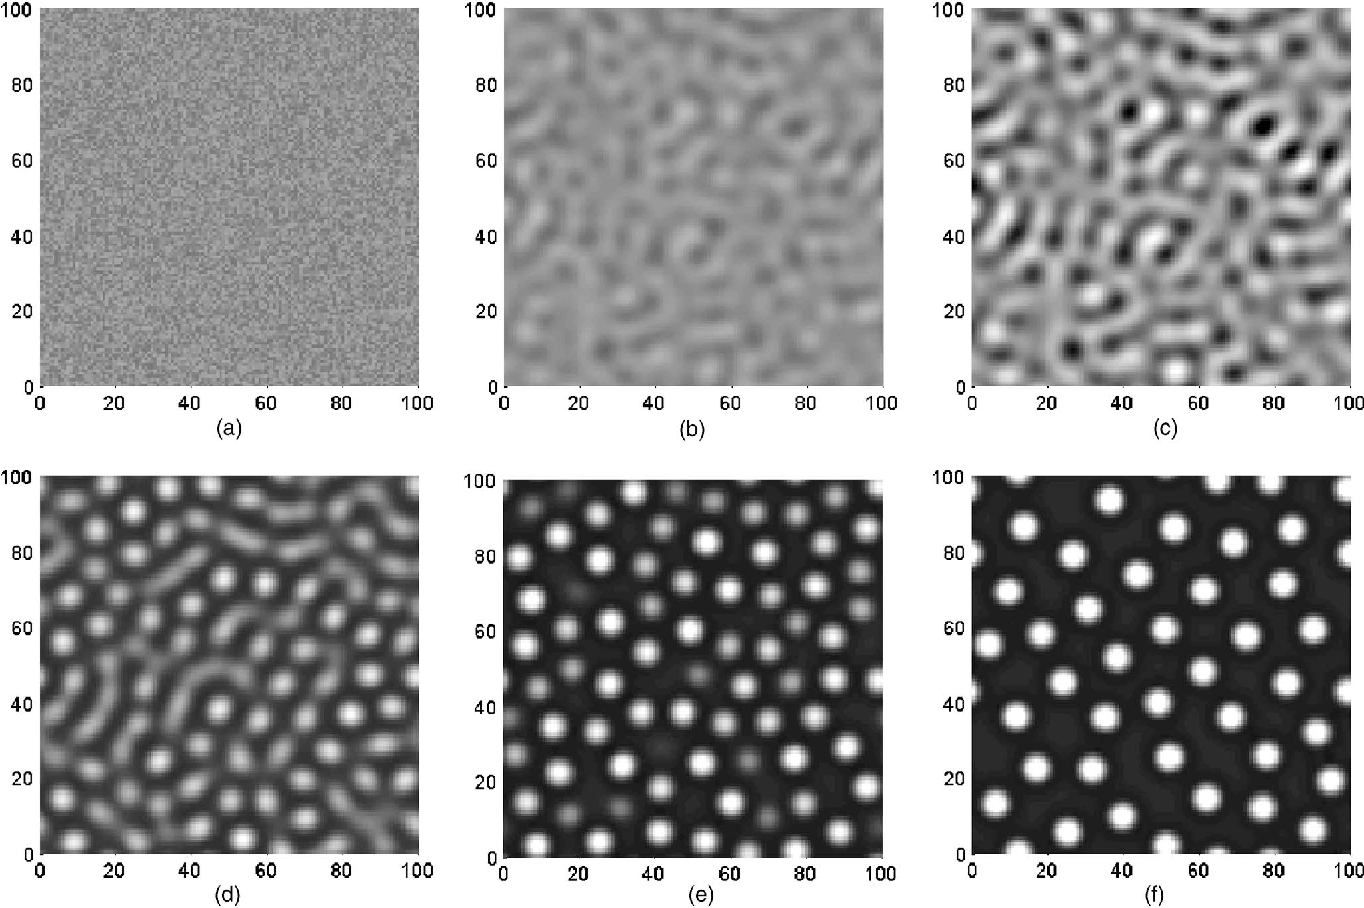 FIG. 8. Three-dimensional simulation of surface evolution based on the nonlinear analysis of both stress and wetting effect. a – f are gray scale contour plots of the thickness profile h x1 ,x2 , white for crests and dark for troughs. a Random perturbation at t=0, r .m.s . =5.77 10−5; b t=20, r .m.s . =2.07 10−5; c t=50, r .m.s . =6.27 10−5; d t=220, r .m.s . =4.86 10−2; e t=500, r .m.s . =9.11 10−2; f t=5000, r .m.s . =1.18 10−1.